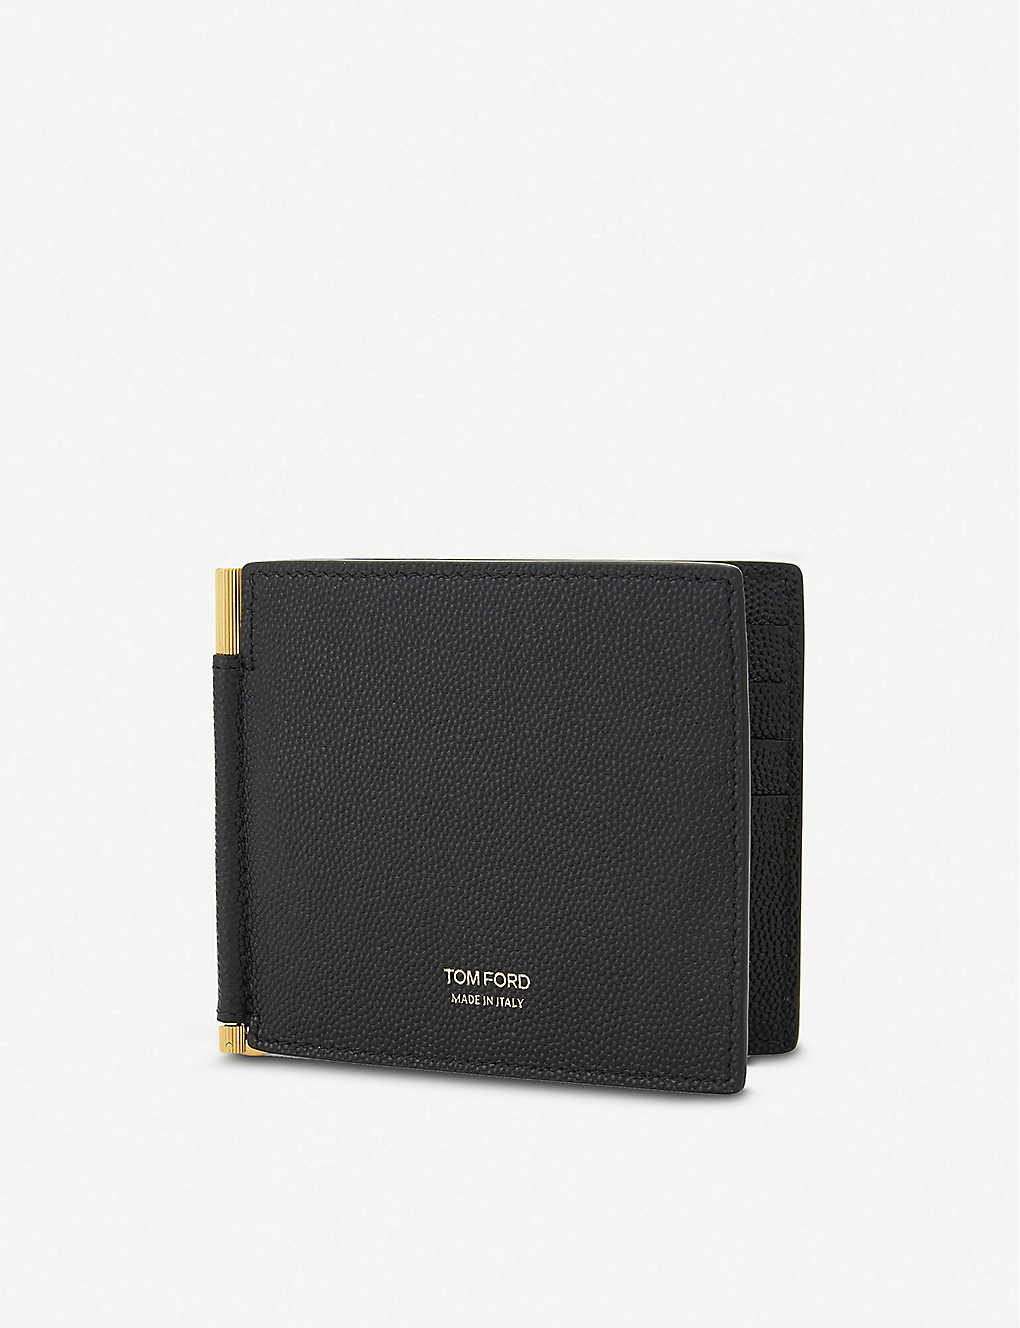 87fb471a86fa TOM FORD - Textured leather money clip wallet